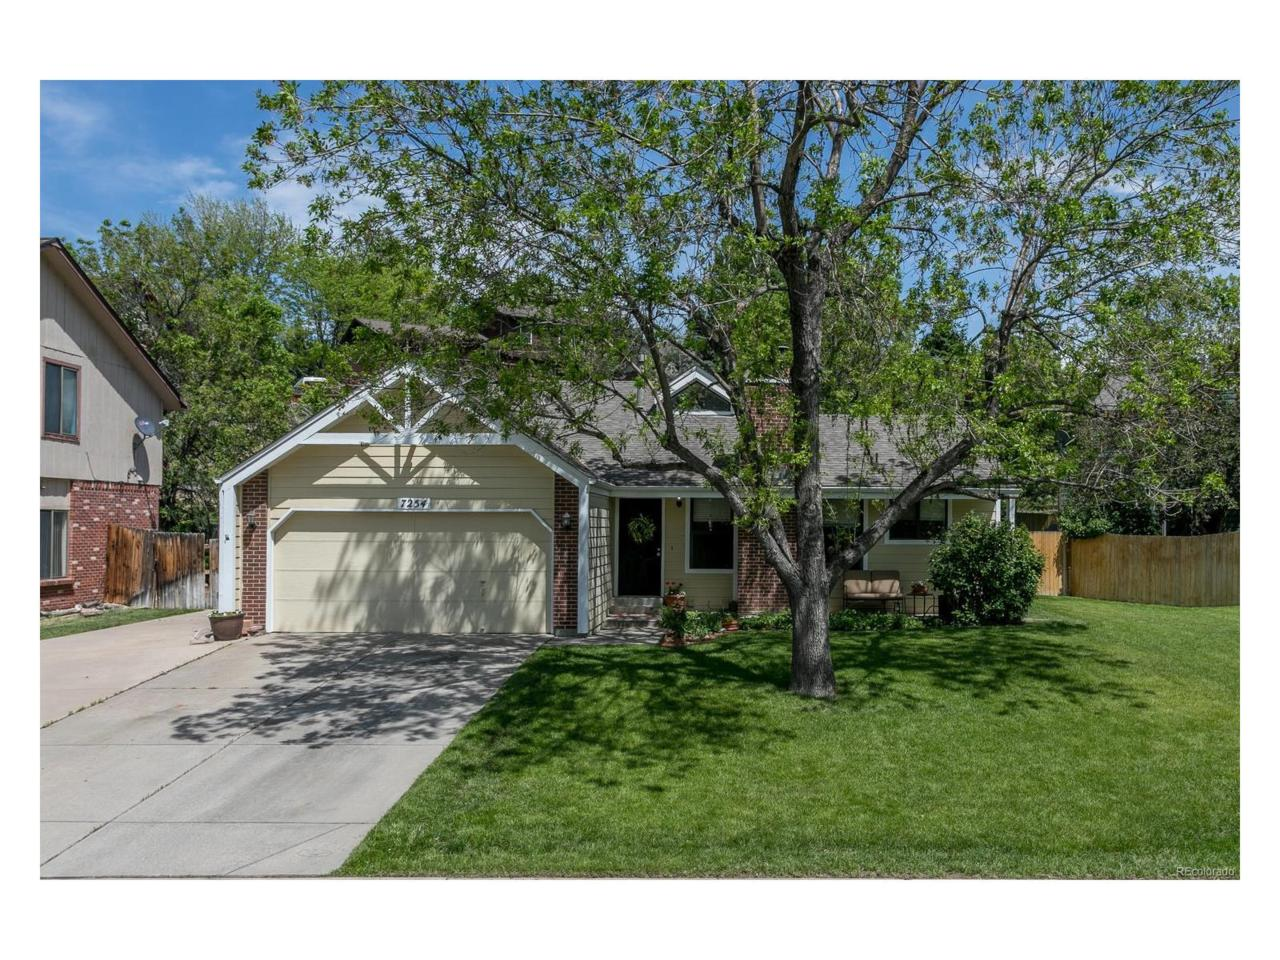 7254 S Houstoun Waring Circle, Littleton, CO 80120 (MLS #7054499) :: 8z Real Estate